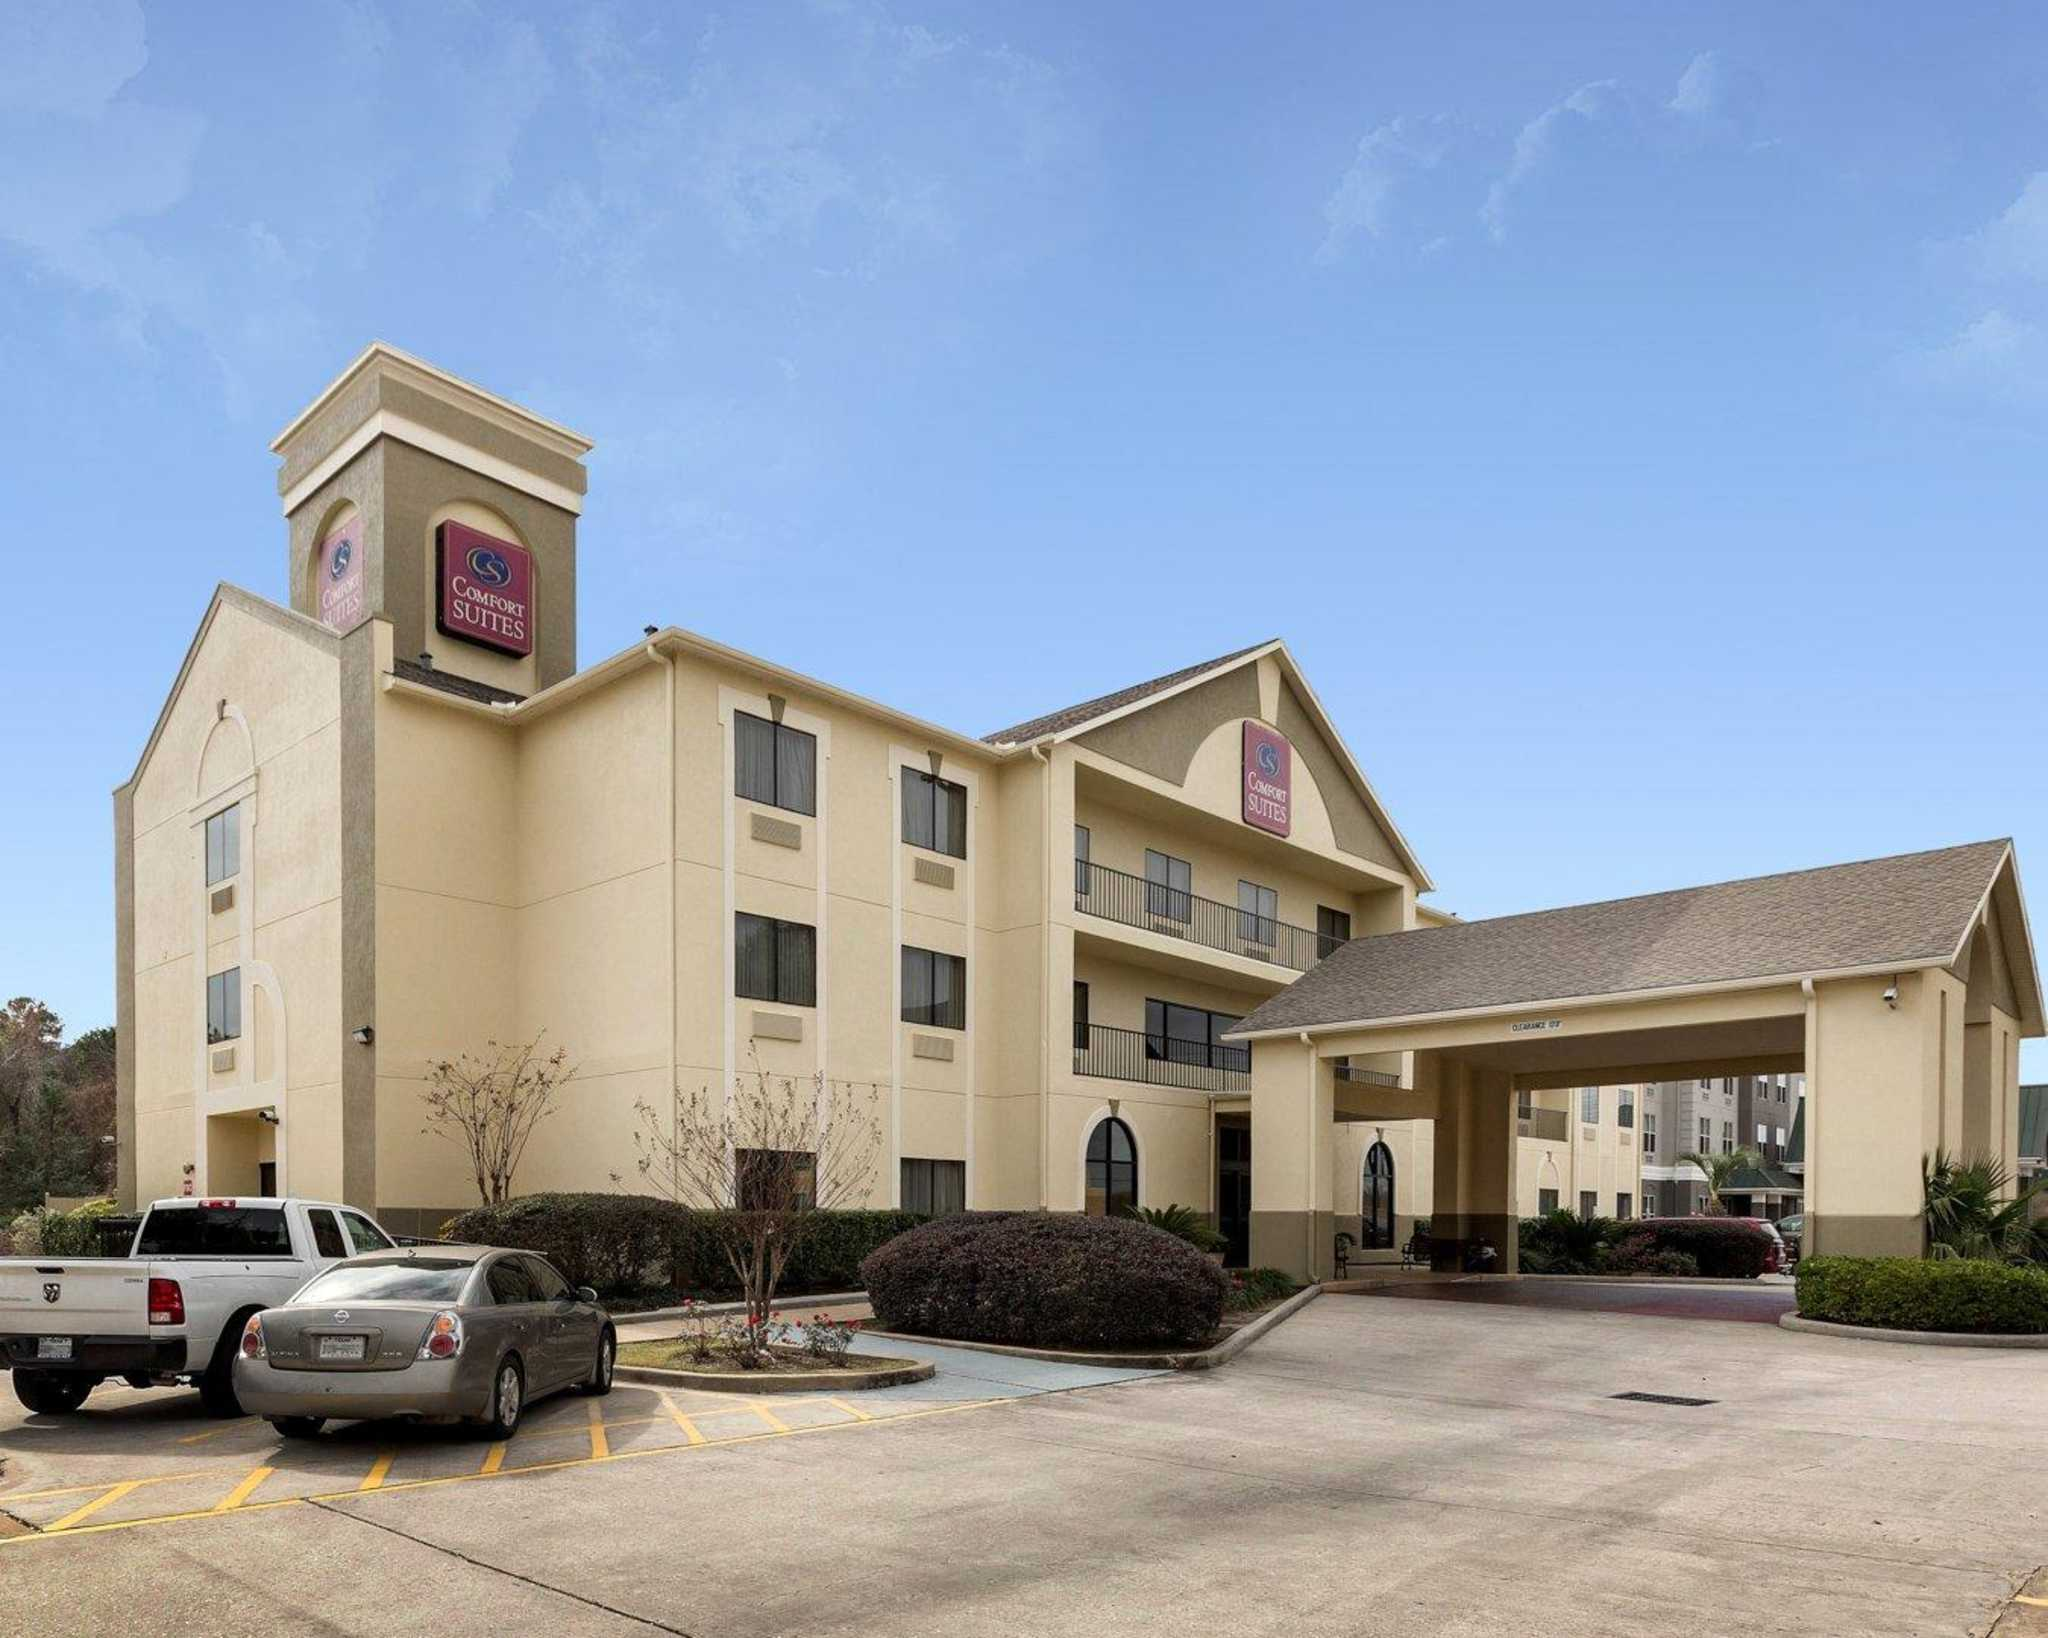 Hotels Near Iah With Shuttle Service